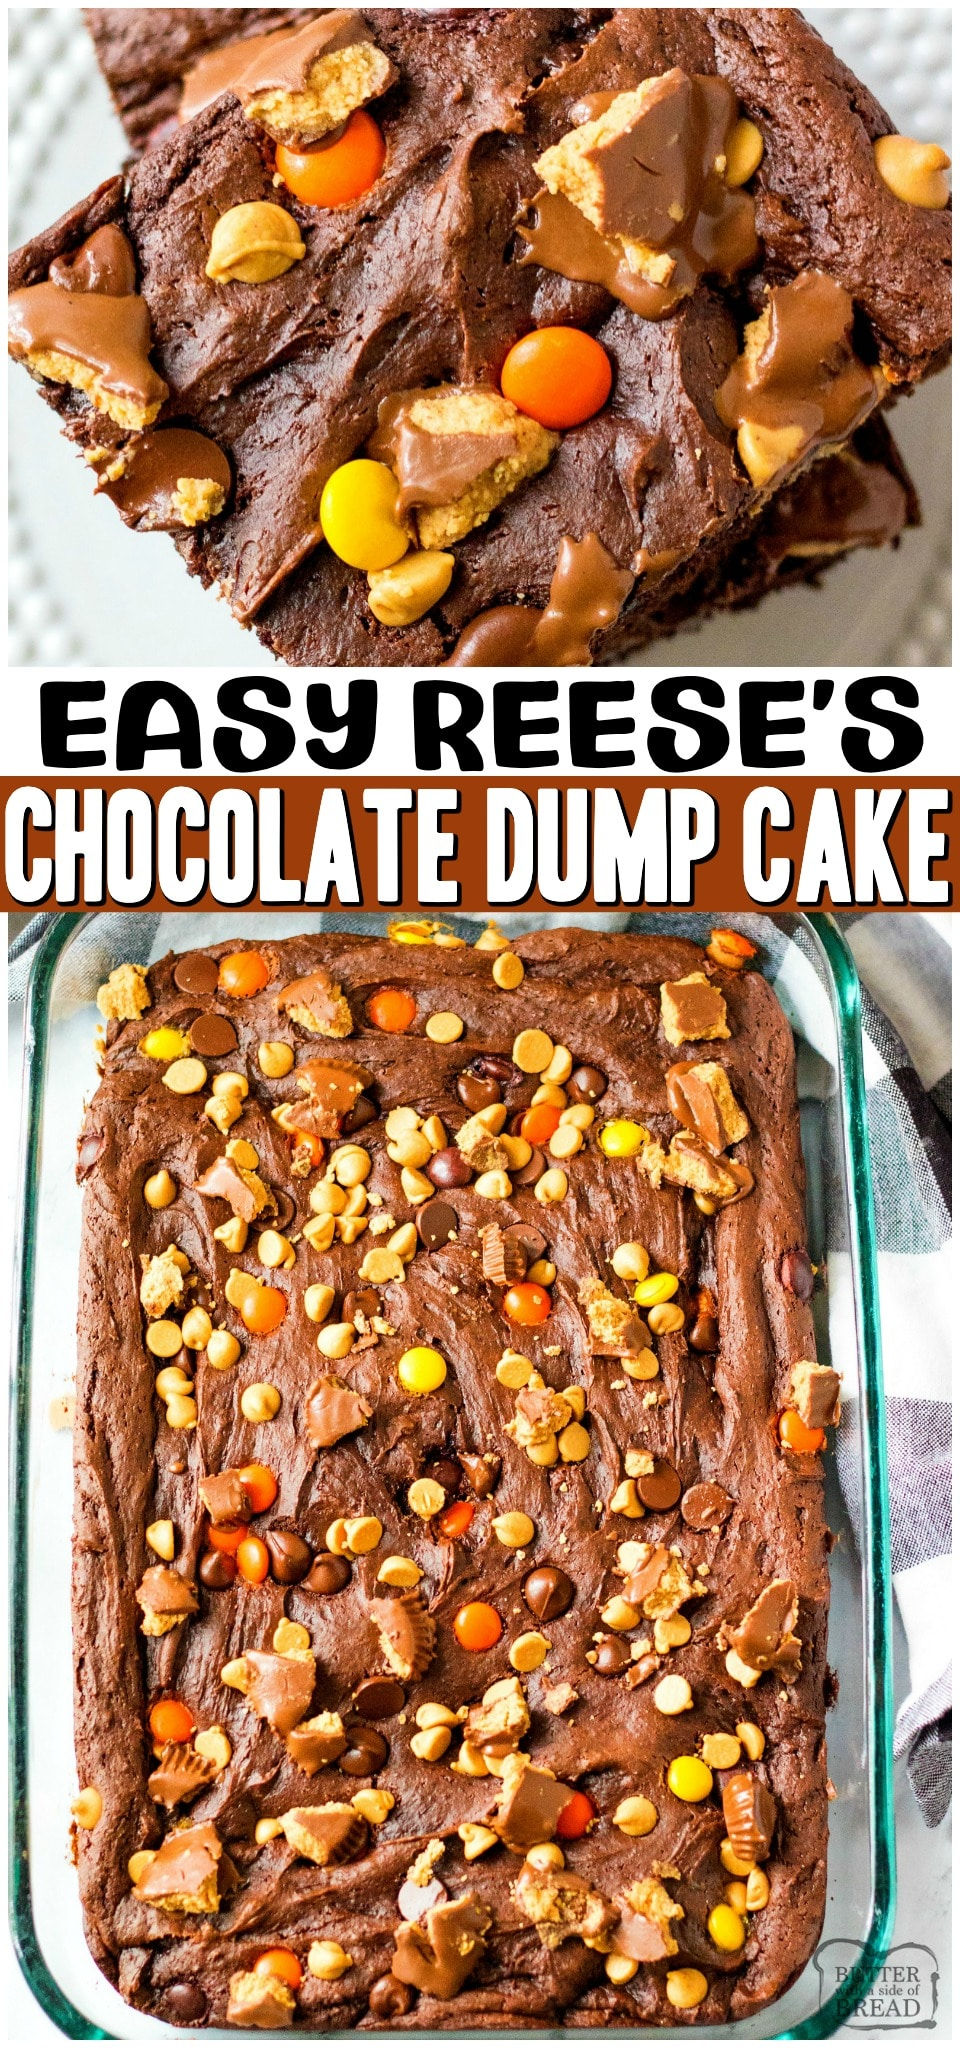 Easy Reese's Chocolate Dump cake recipe is so simple to make! Dump Cake= Cake mix + pudding! Rich, fudgy chocolate cake topped with chocolate chips, peanut butter chips and Reese's pieces. #dumpcake #chocolate #reeses #easycake #cakerecipe #peanutbutter #baking #dessert #Fall from BUTTER WITH A SIDE OF BREAD